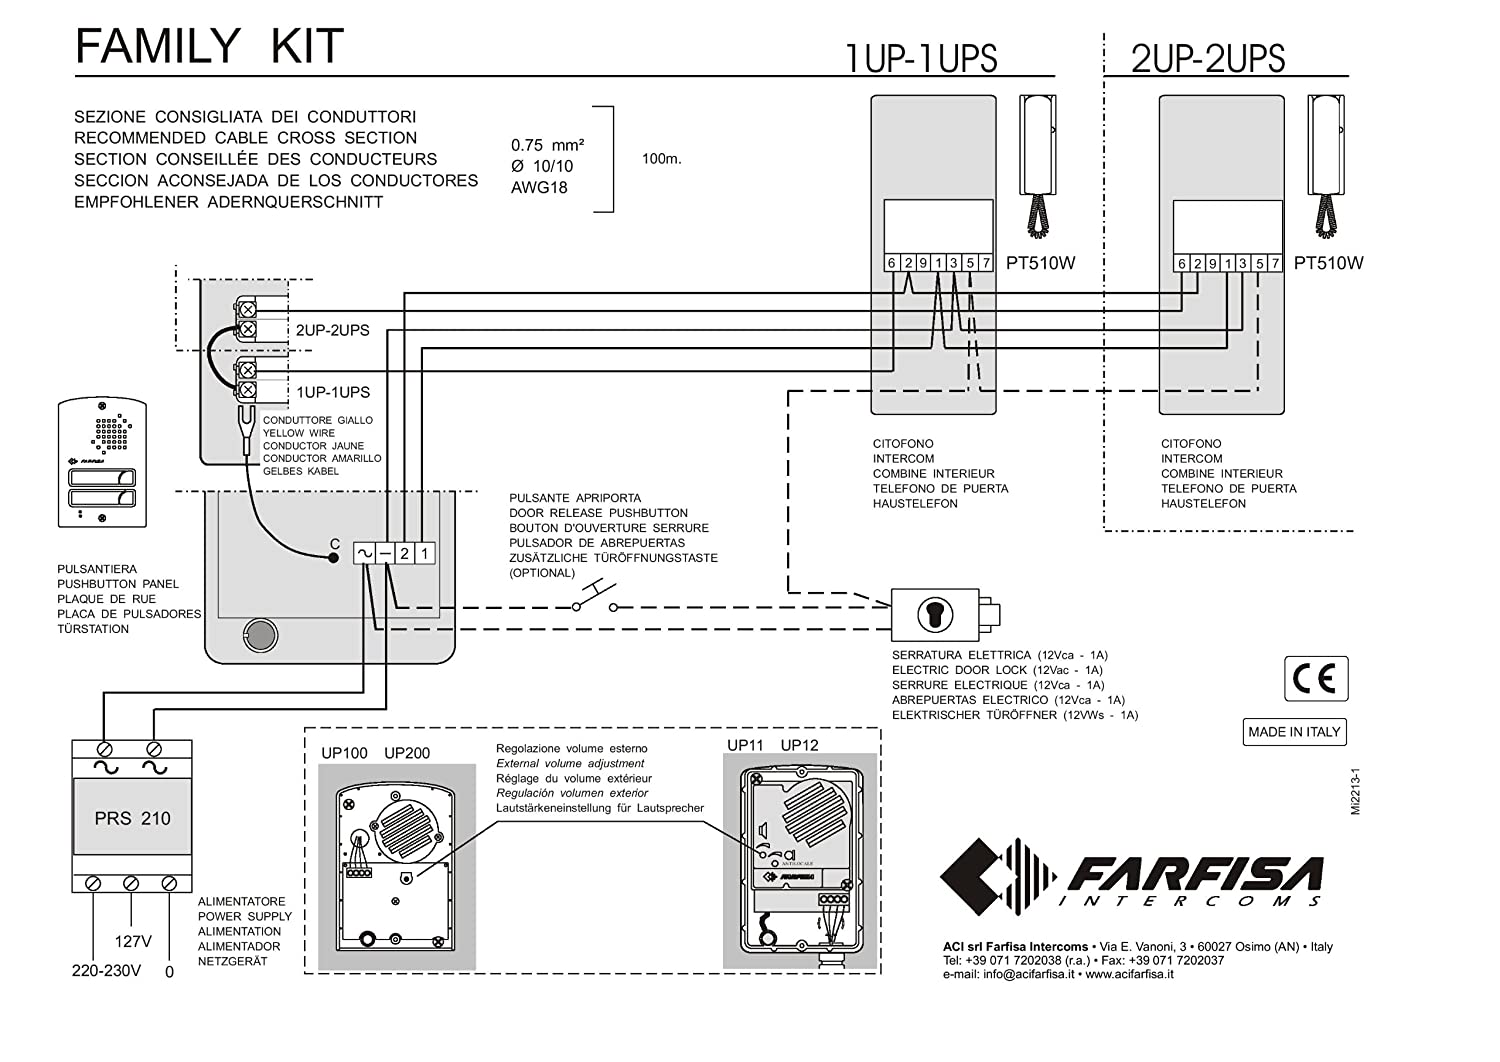 81VvKBixesL._SL1500_ amazon com o9n farfisa 1ups door entry audio intercom 2 way farfisa door entry wiring diagrams at readyjetset.co